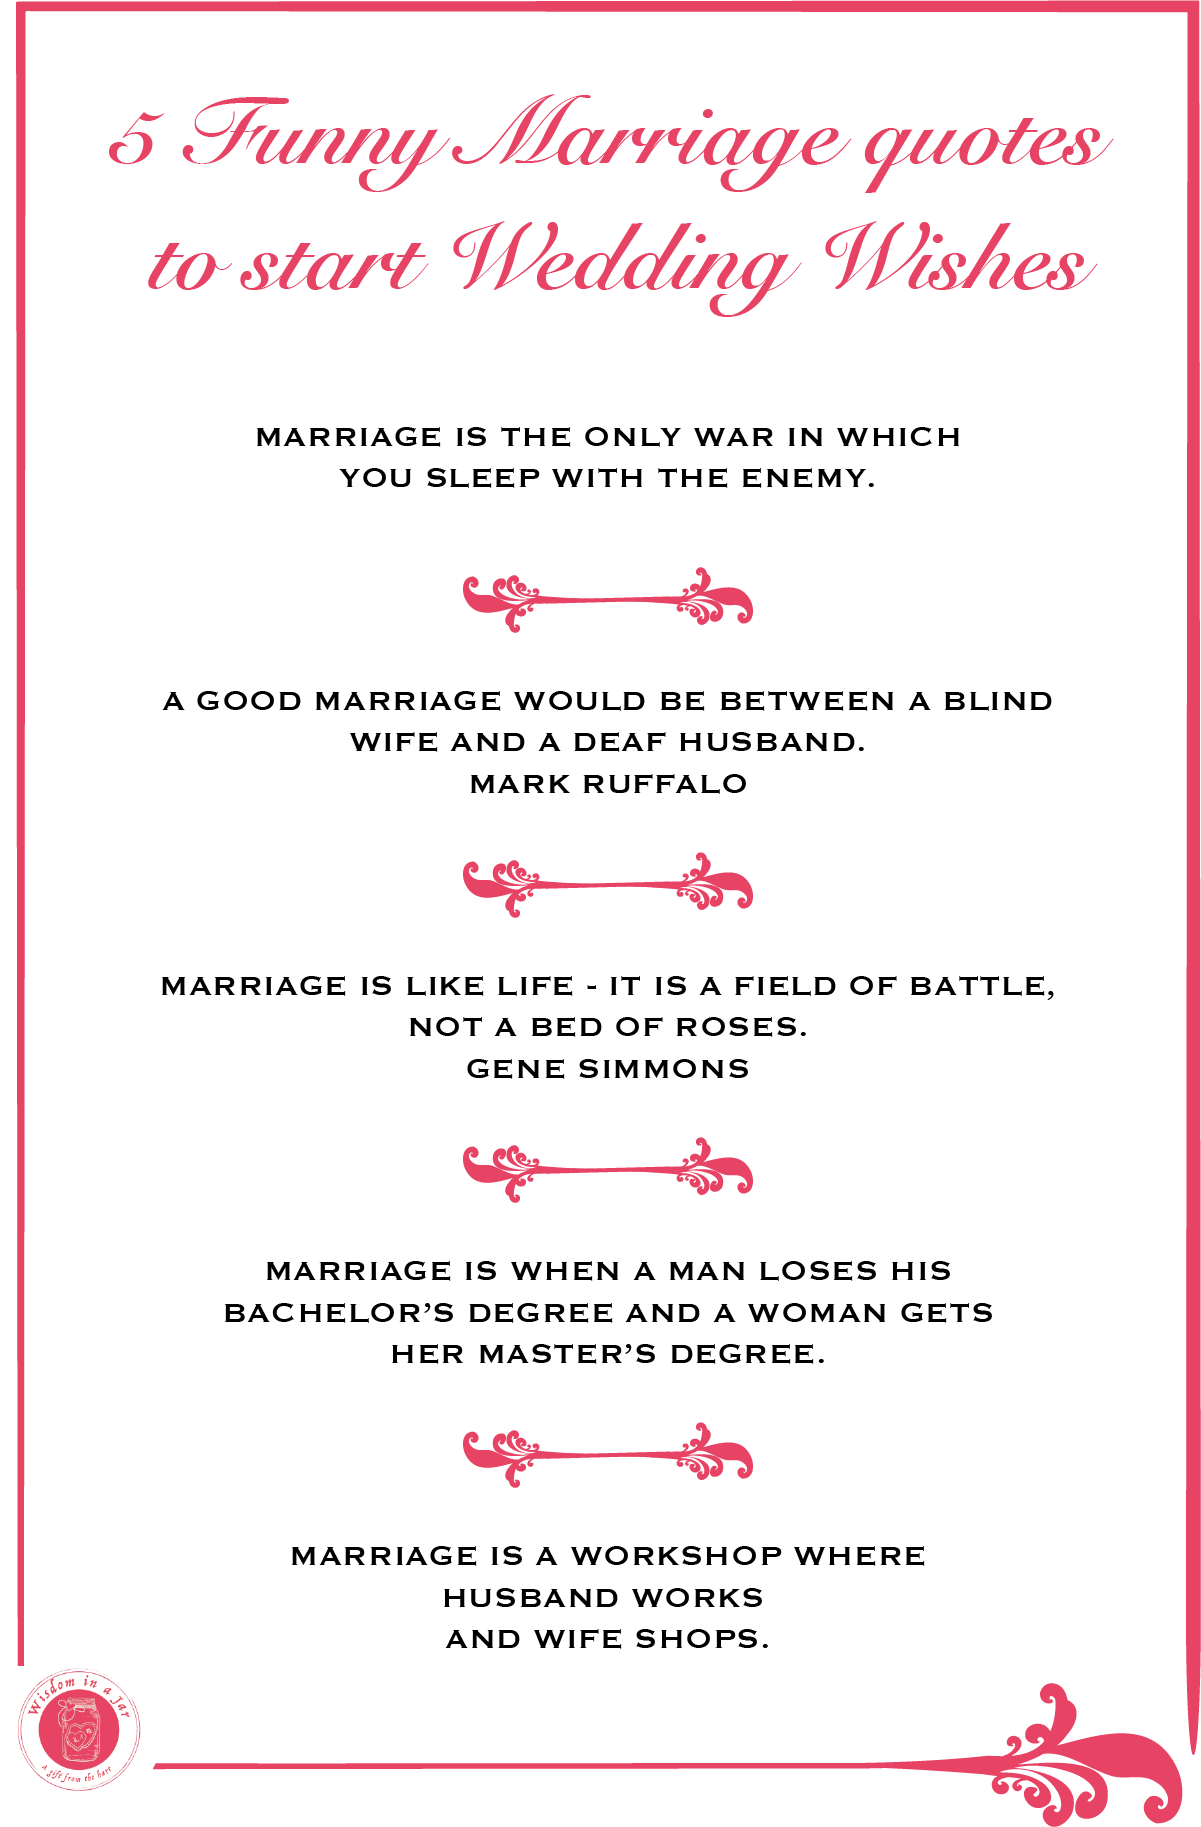 5 Funny Marriage Quotes To Start Wedding Wishes Click Through For More Weddingwishes Marriagequot Wedding Wishes Marriage Quotes Funny Funny Wedding Cards